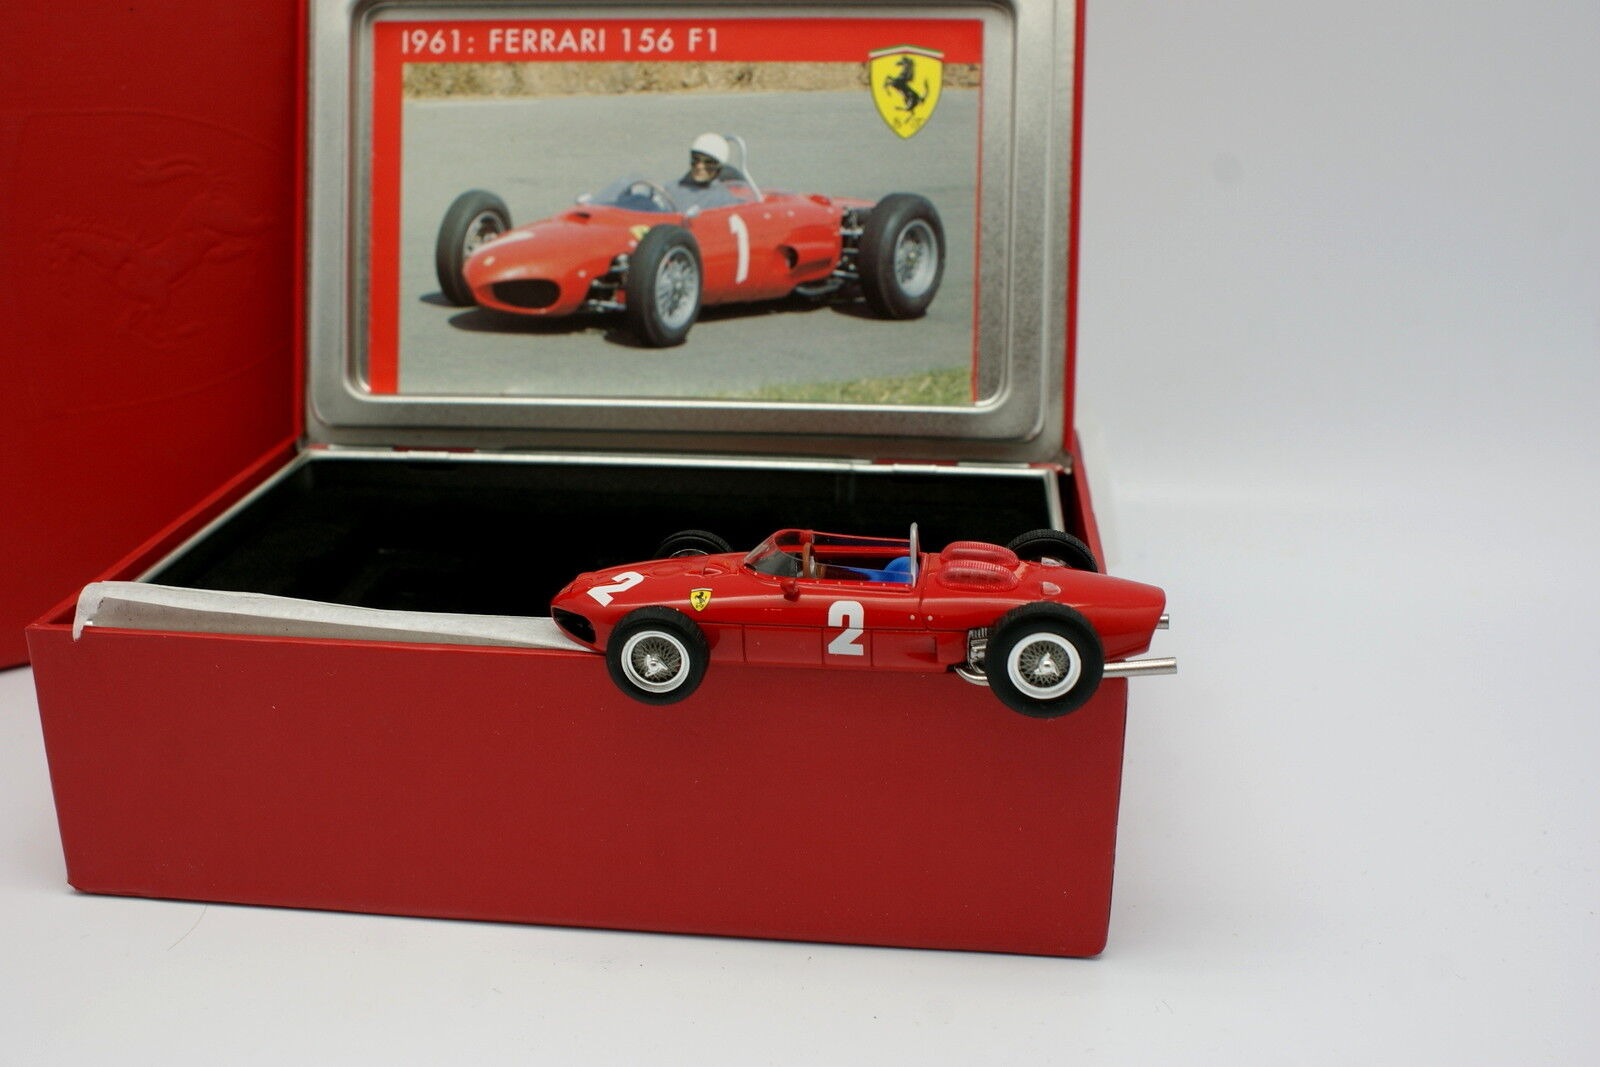 Hot Wheels La Storia 1/43 - F1 Ferrari 156 2018